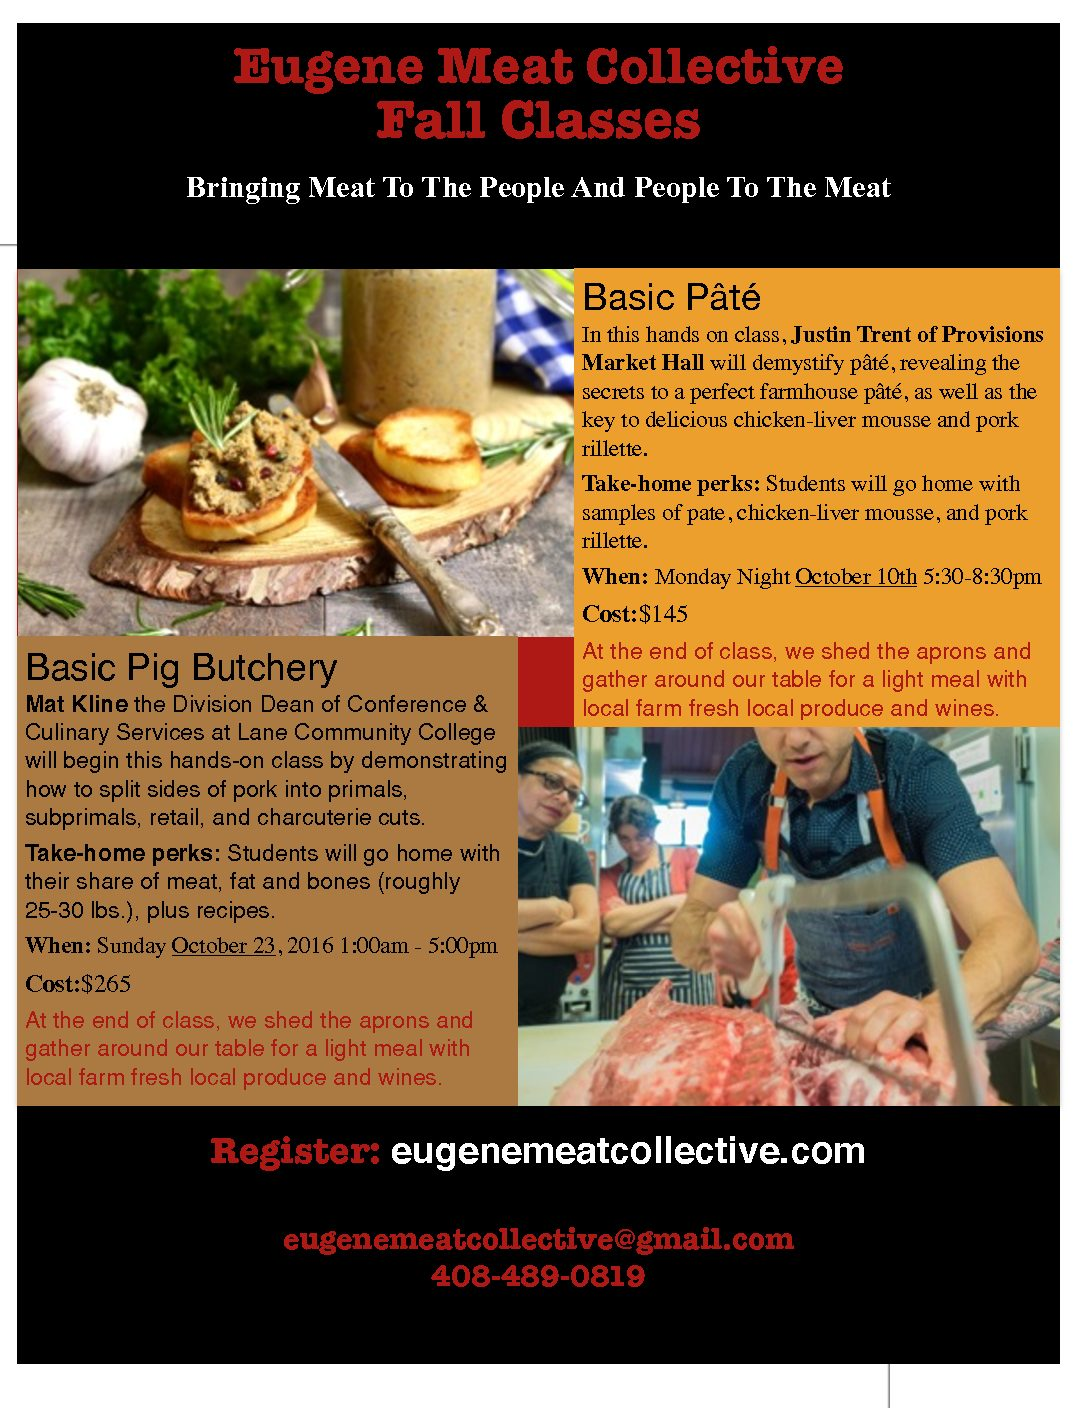 We donated a couple pigs to the eugene meat collective for this amazing class there s still spots available